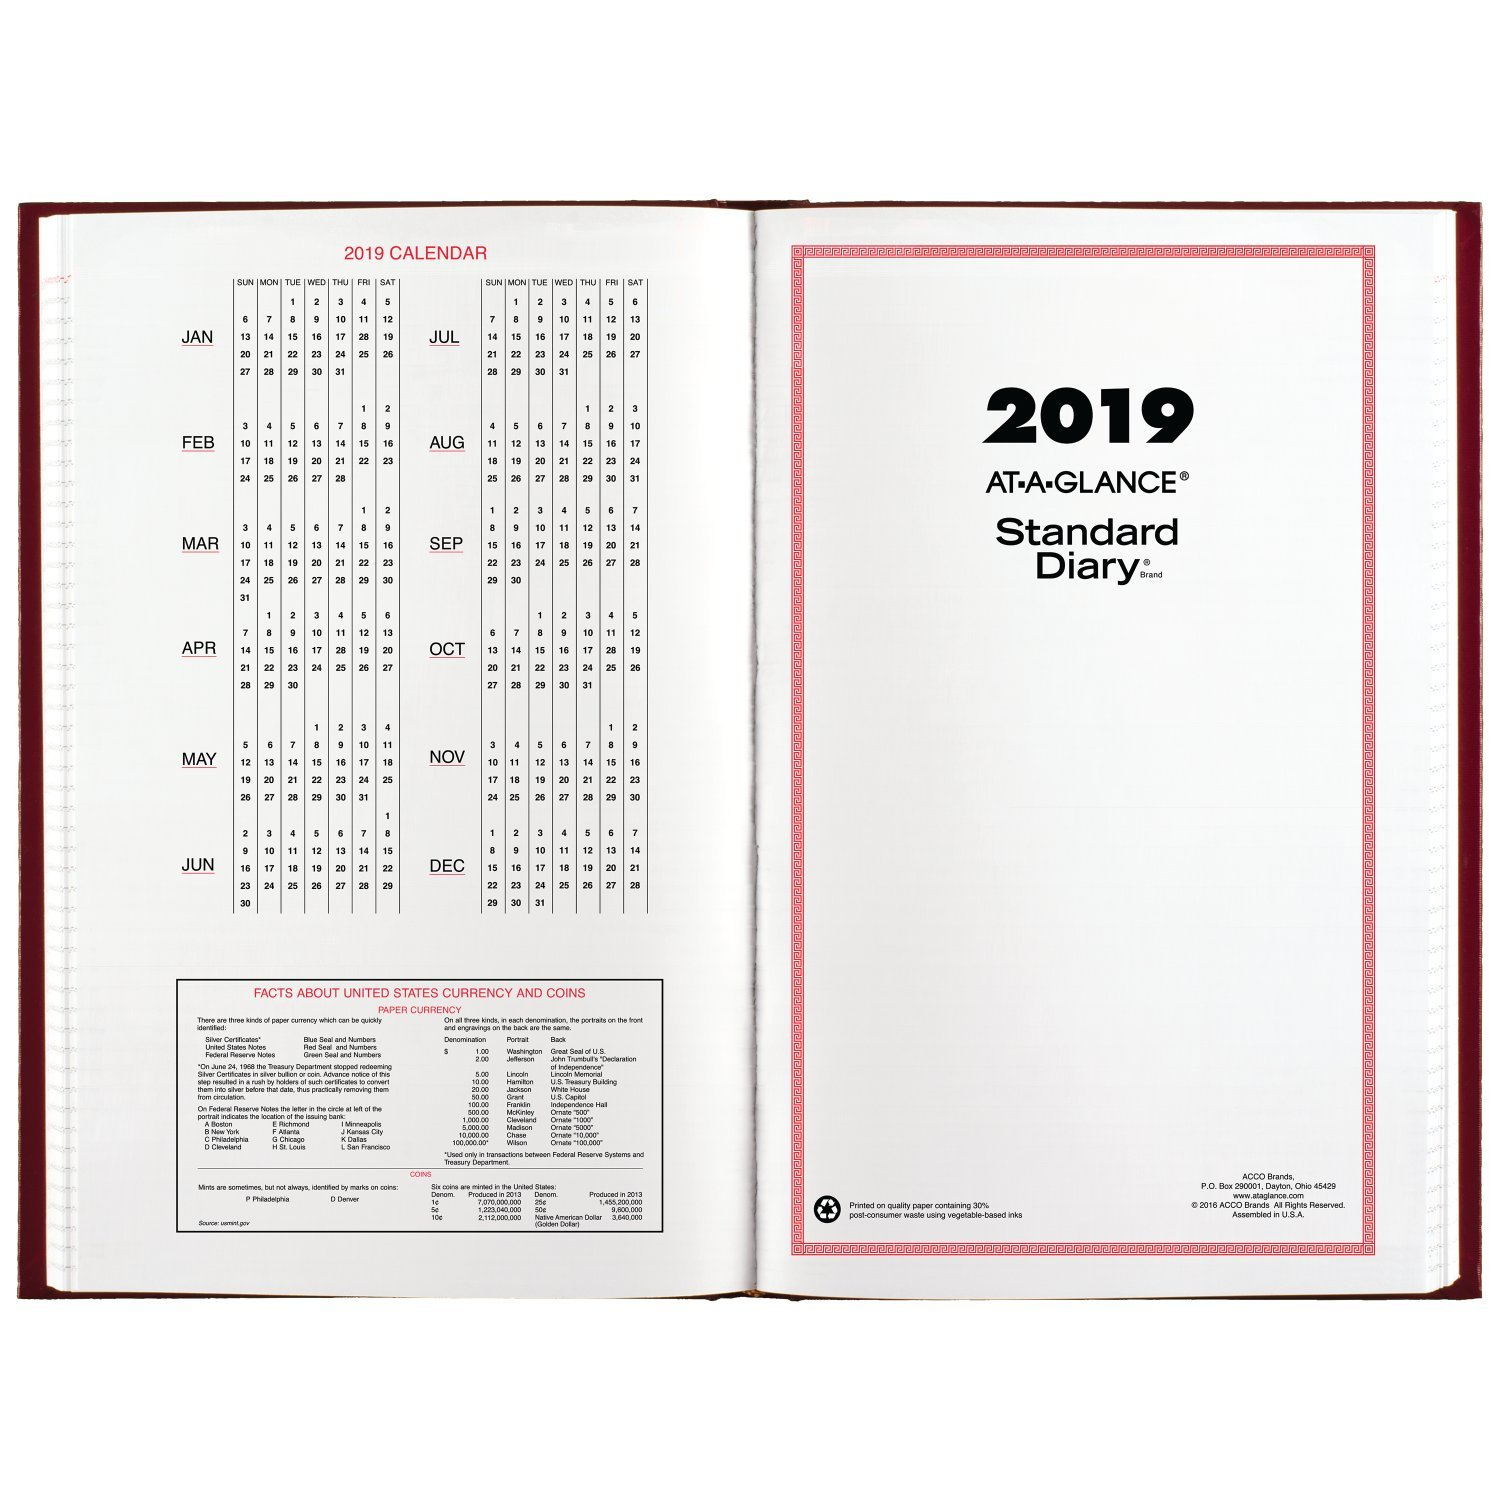 AT-A-GLANCE 2019 Daily Diary, January - December, 8-3/16'' x 13-7/16'', Standard, Red (SD38179) by AT-A-GLANCE (Image #5)